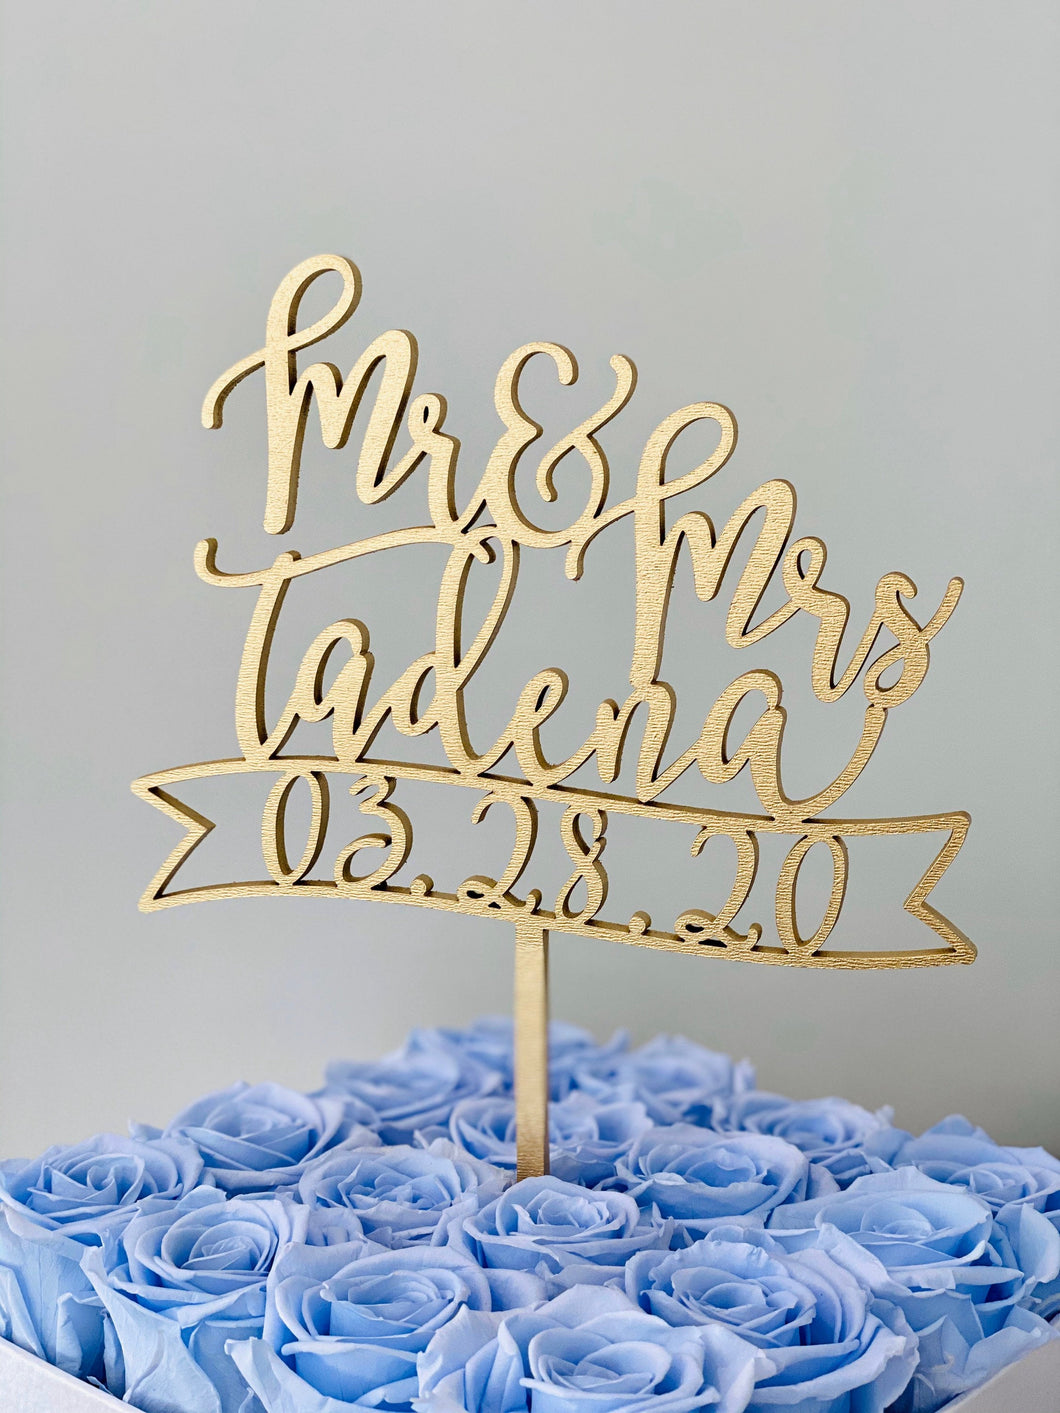 Personalized Mr & Mrs Last Name Date Banner Cake Topper, 6